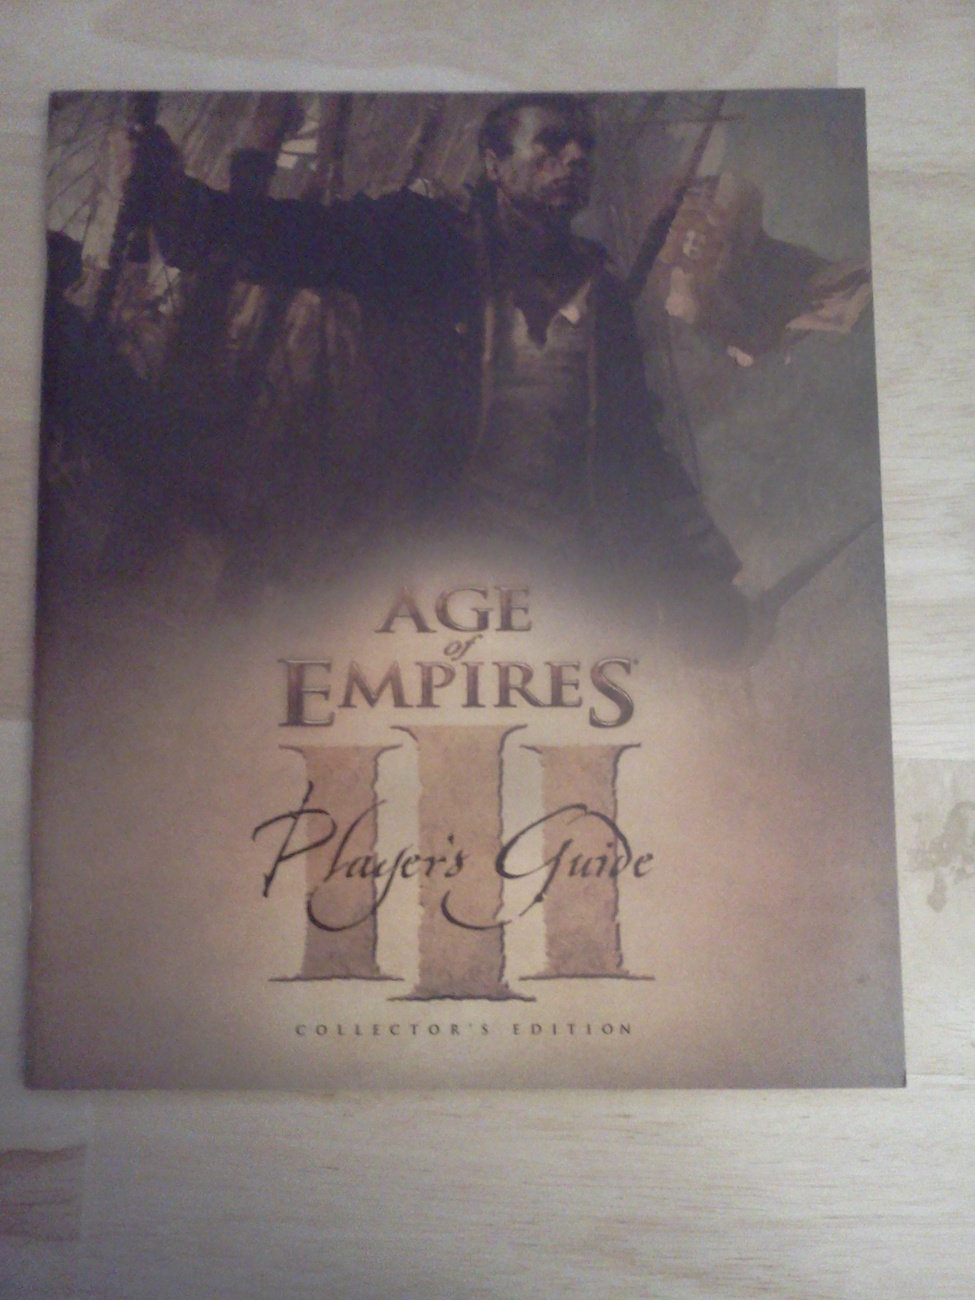 Lot of Age of Empires 3 Game Items! (DVD, Players Guide, Demo Disc)